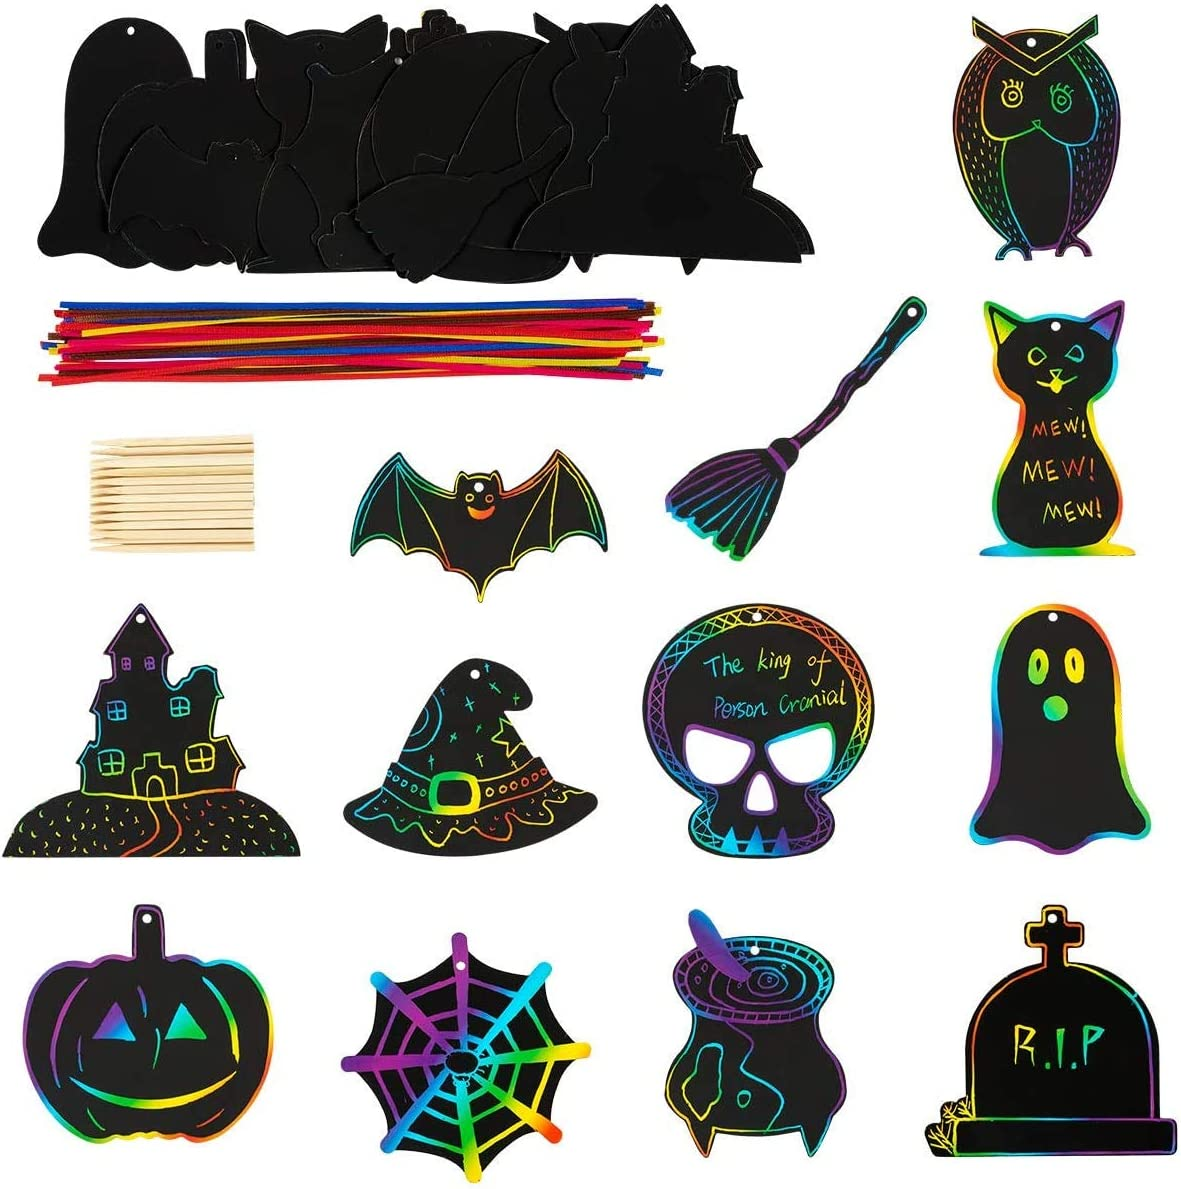 Rainbow Scratch Art Paper Card Pumpkin Bat Castle Hats Craft Kit with 24pcs Wooden Styluses and 48pcs Ribbons for Birthday Halloween Party Supplies unknow 48 Pieces Halloween Theme Scratch Paper